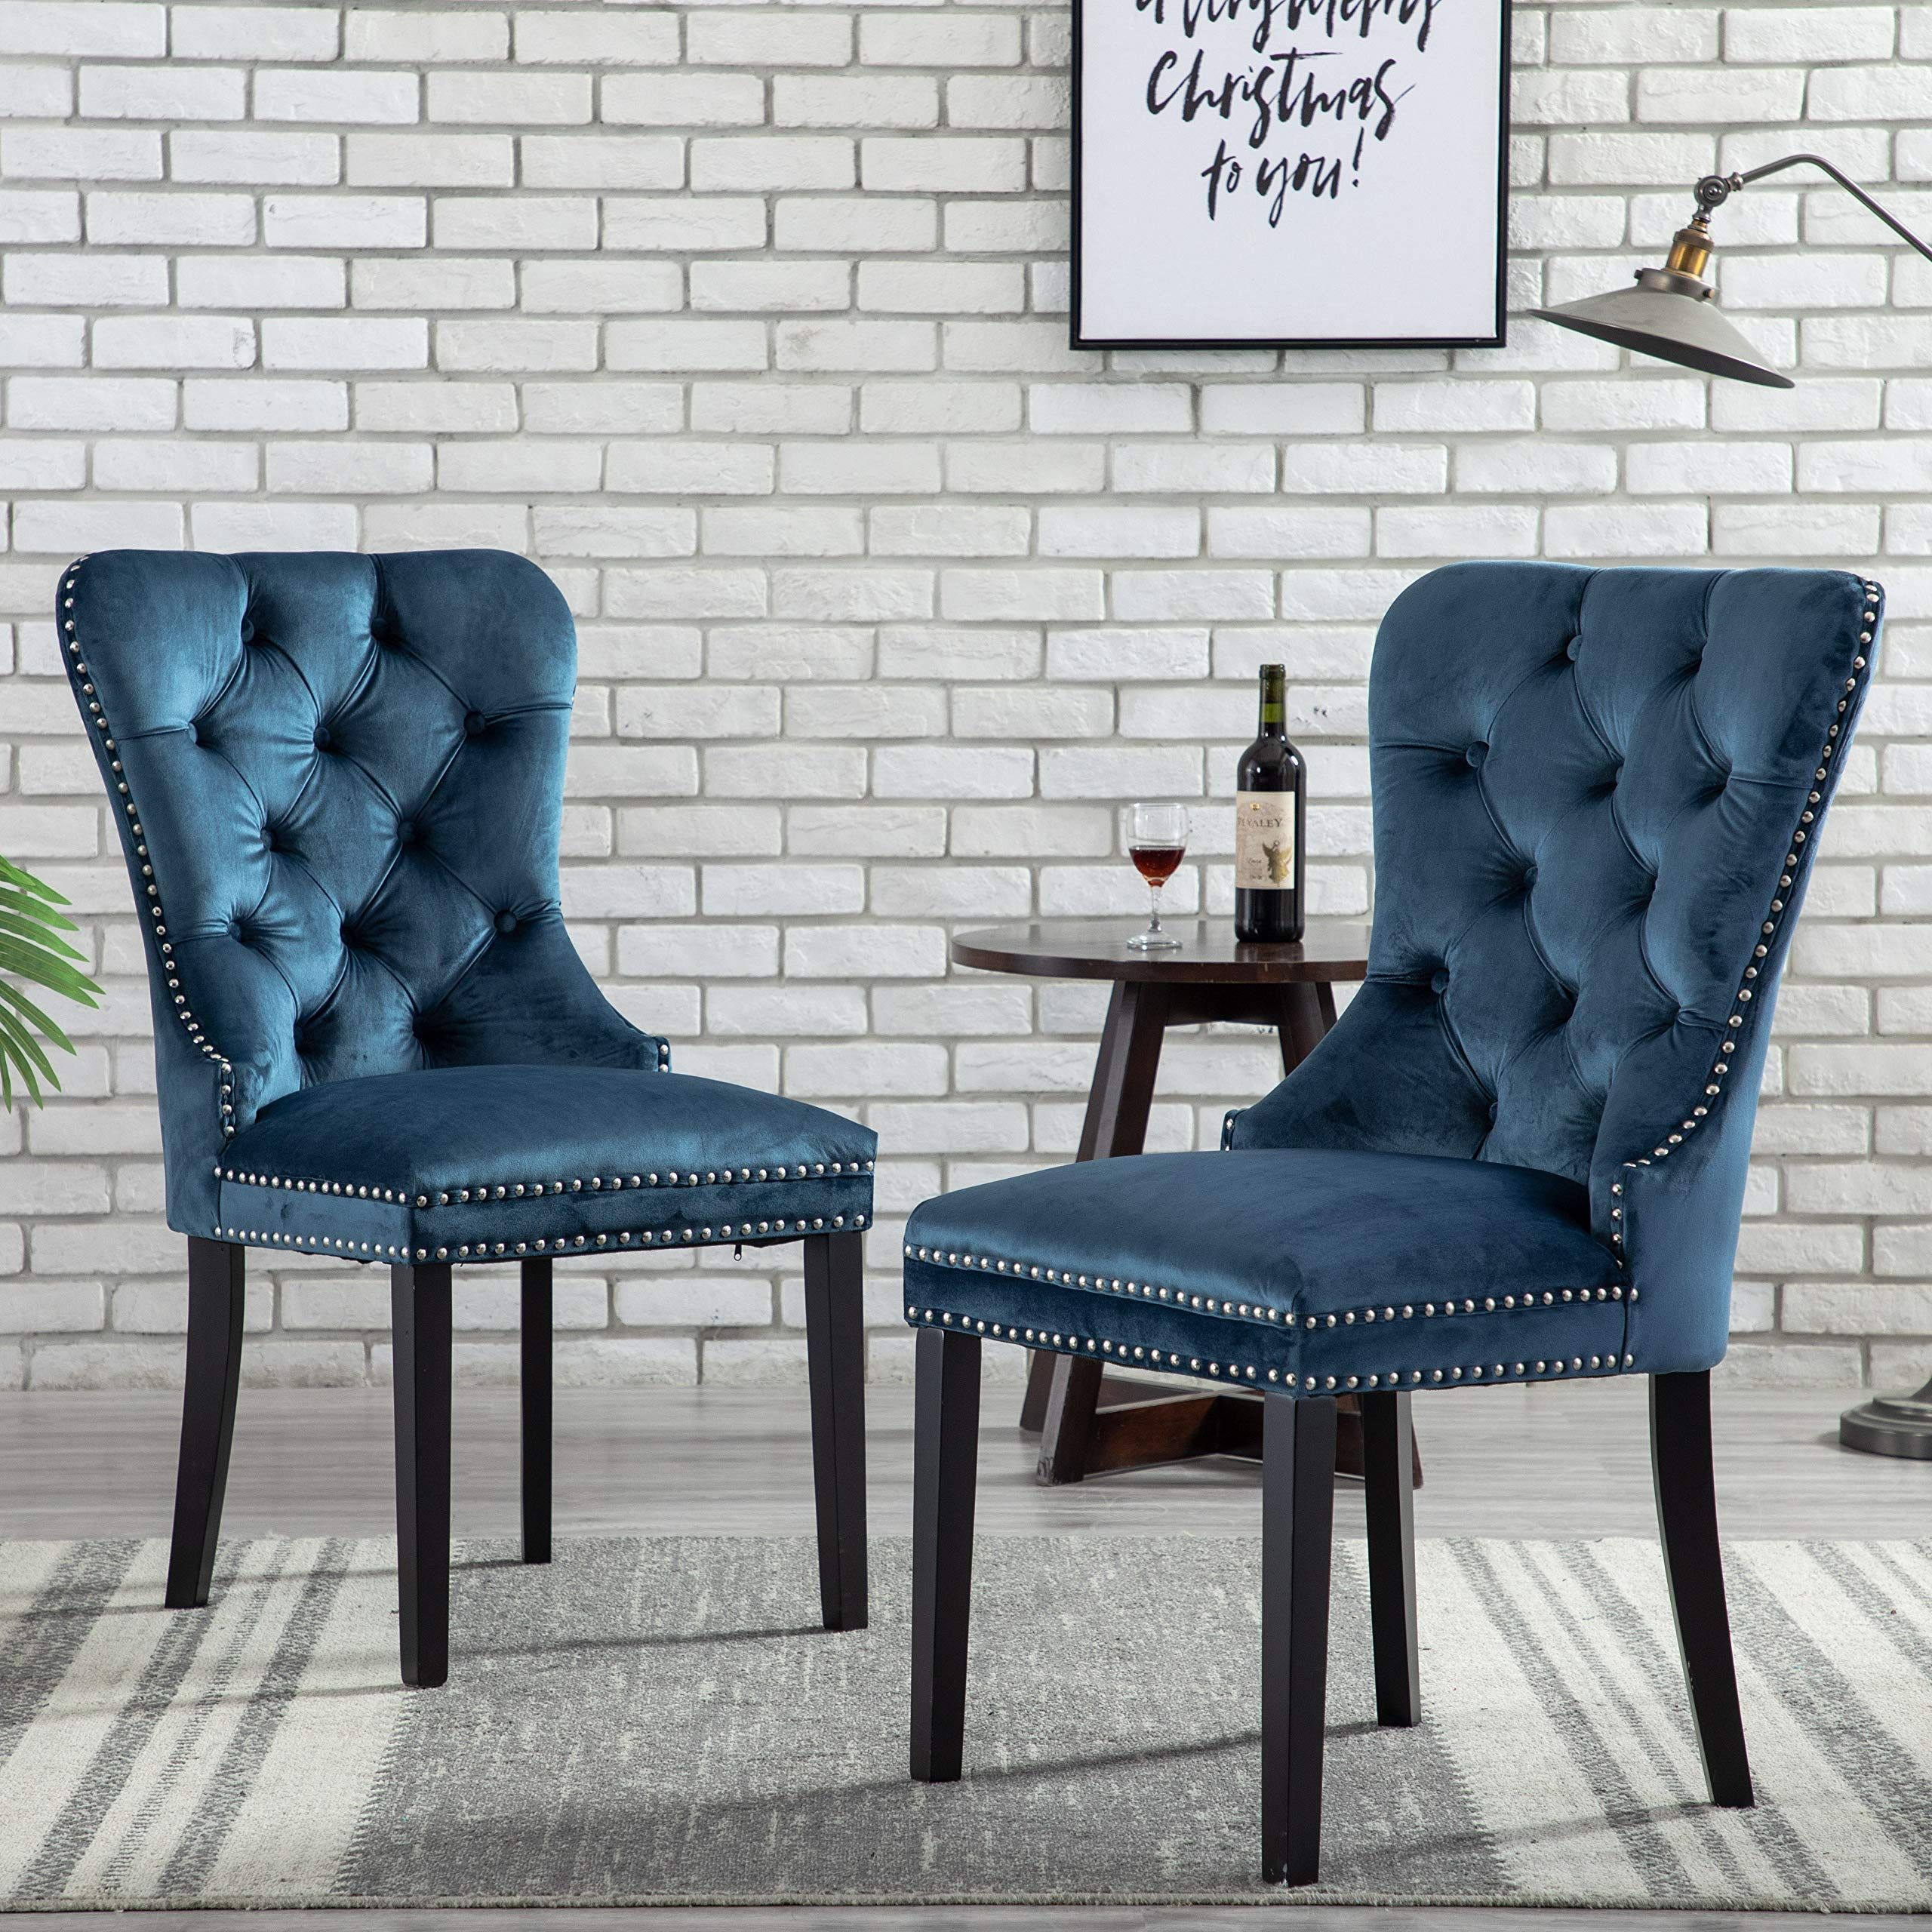 Upholstered Tufted Dining Chairs With Luxurious Button And